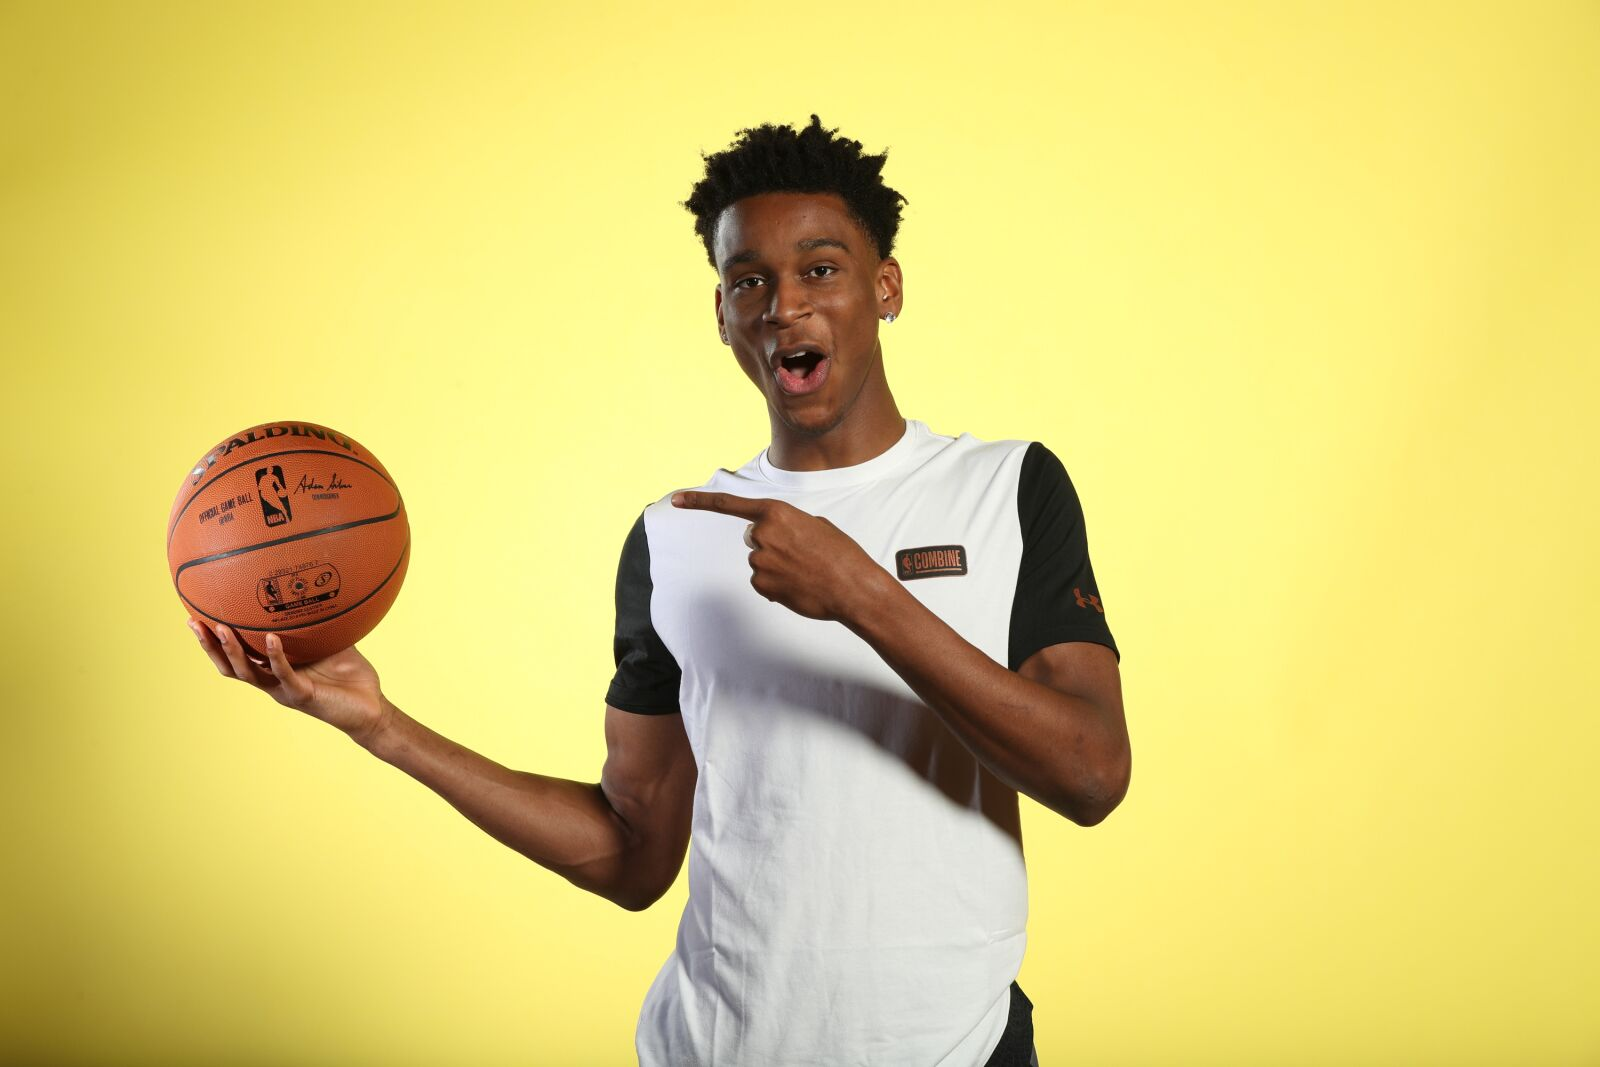 e849e7079e9 Clippers: The Sky is the Limit for Shai Gilgeous-Alexander in the NBA